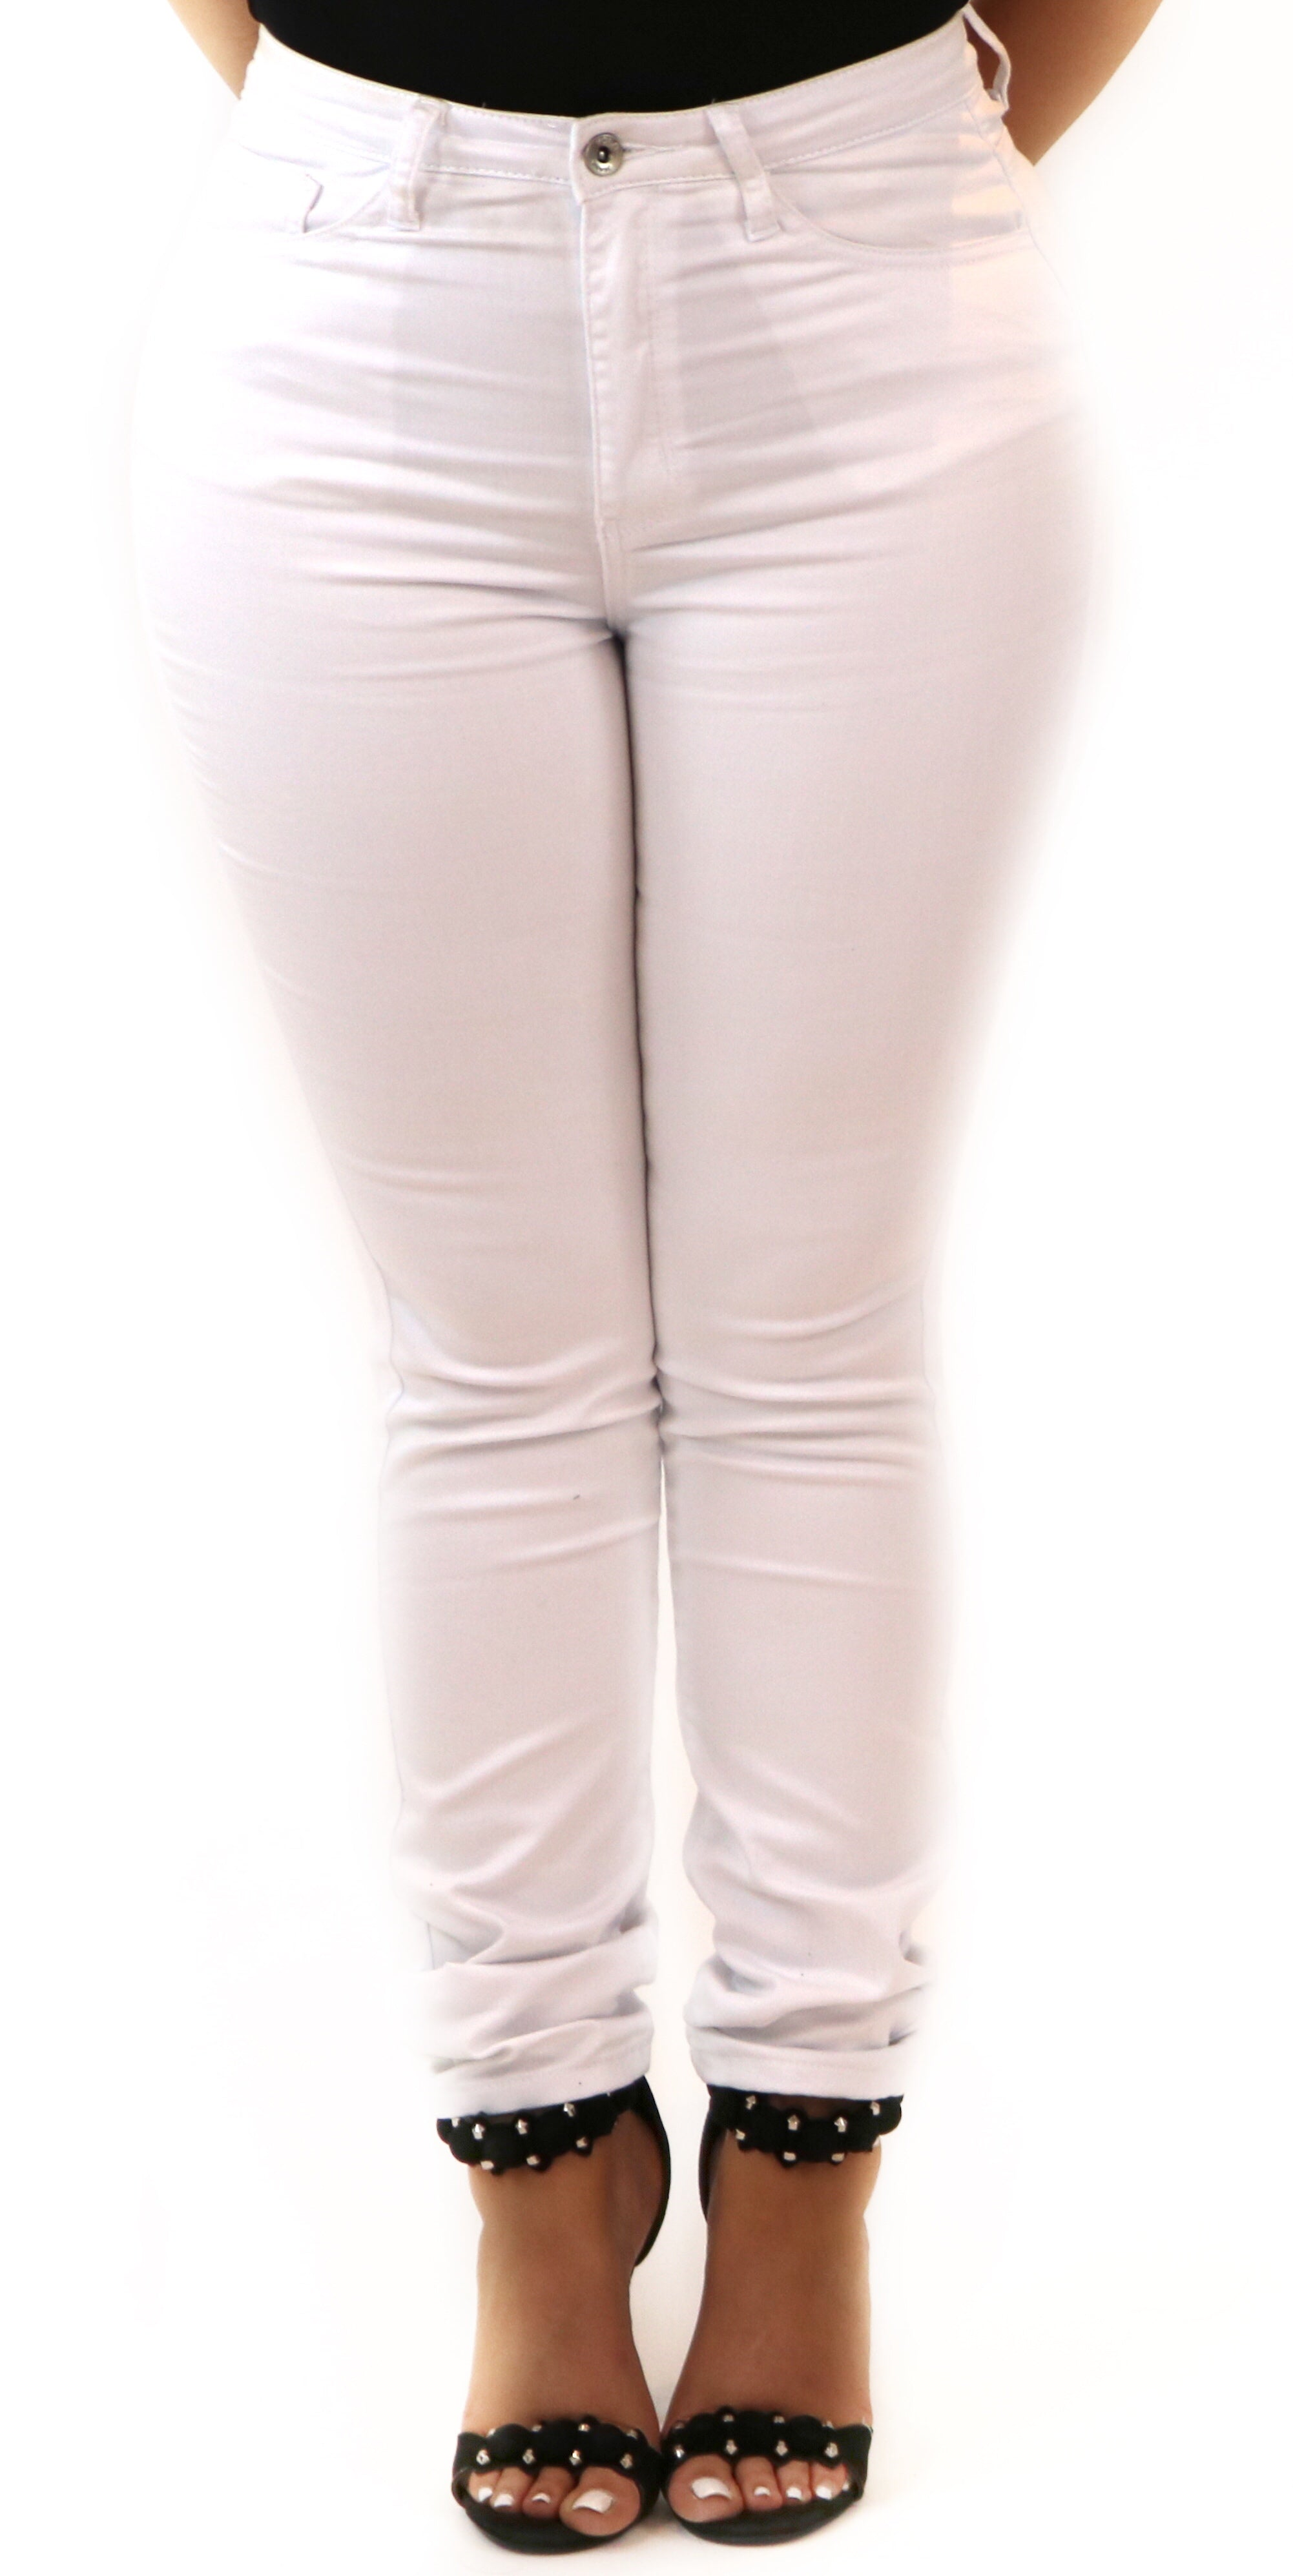 white classic skinny high waist jeans fashion clothes clothing trend style